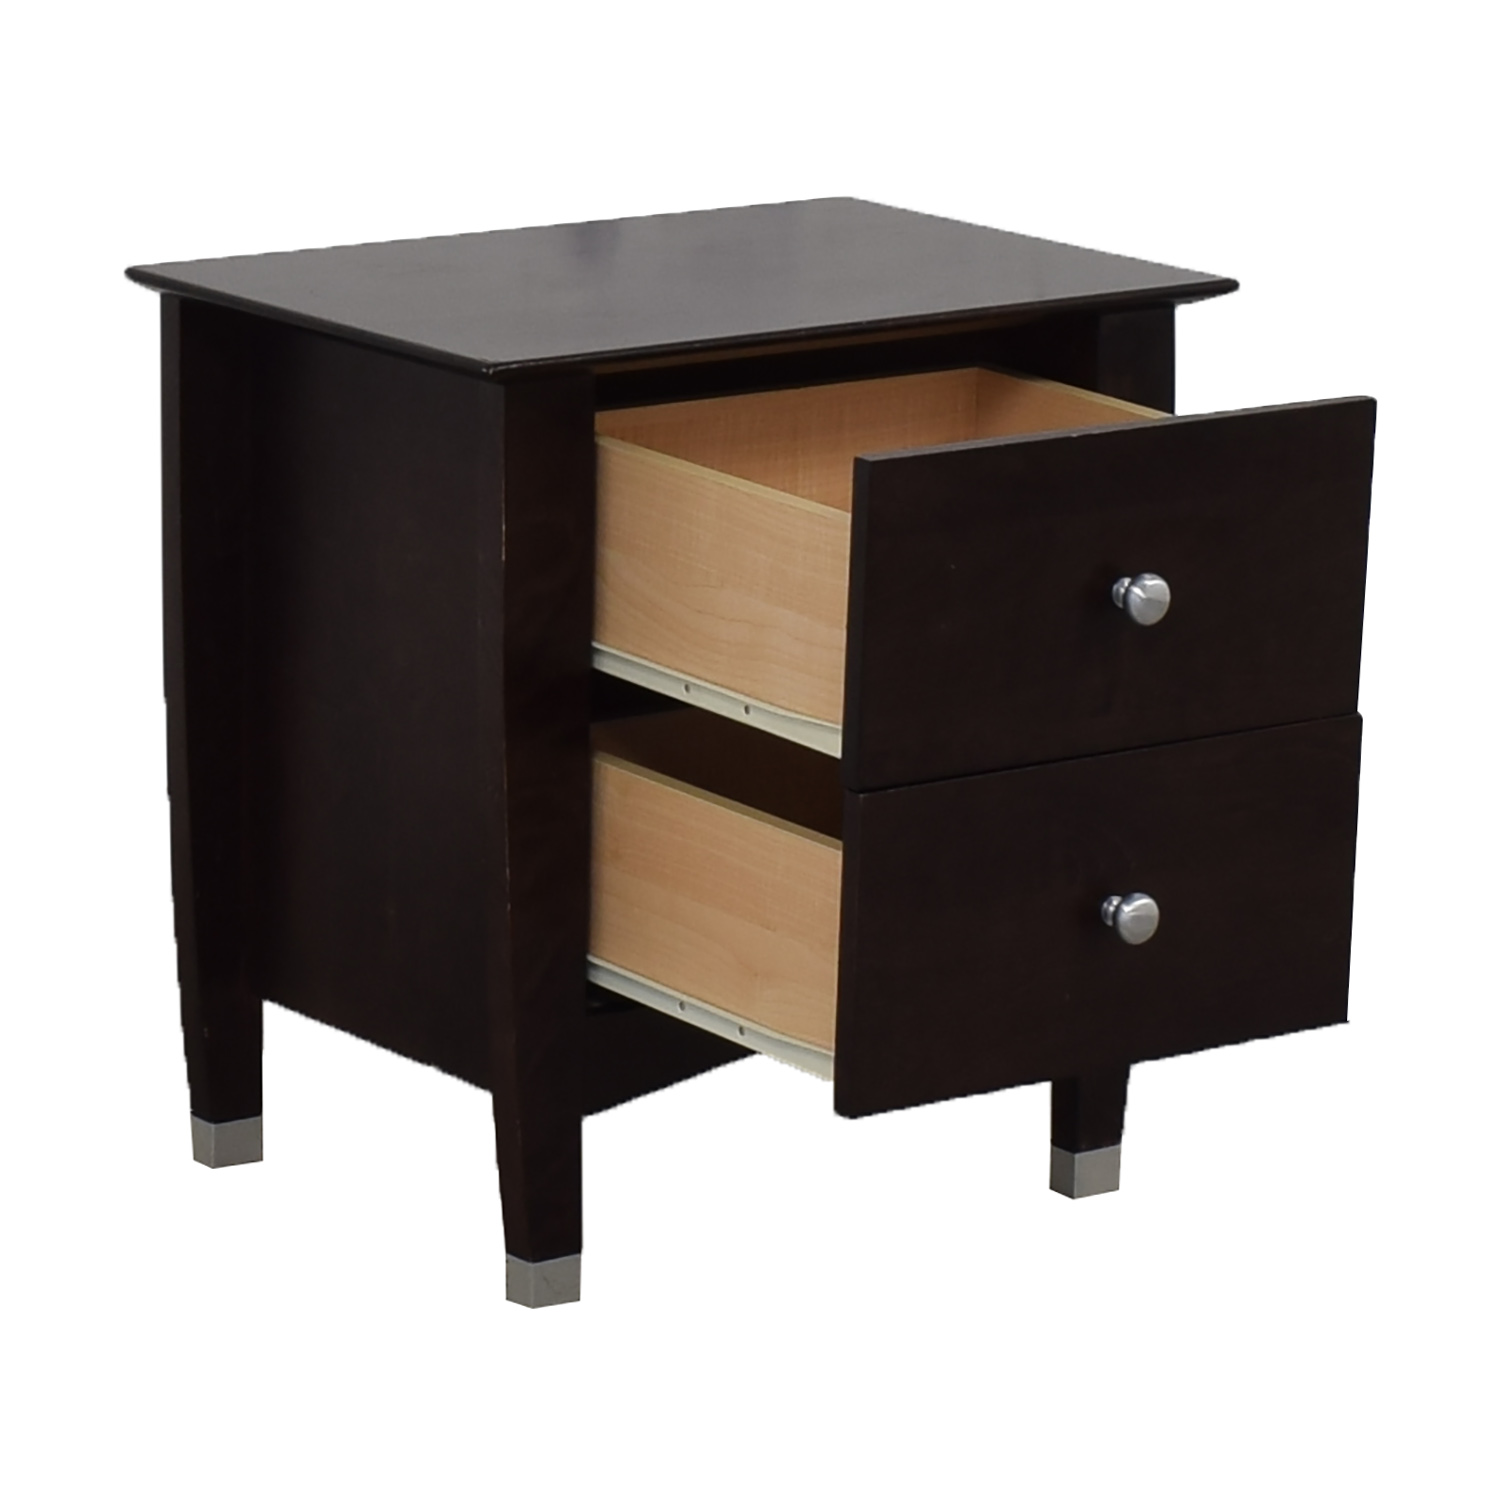 West Elm West Elm Bedside Table second hand